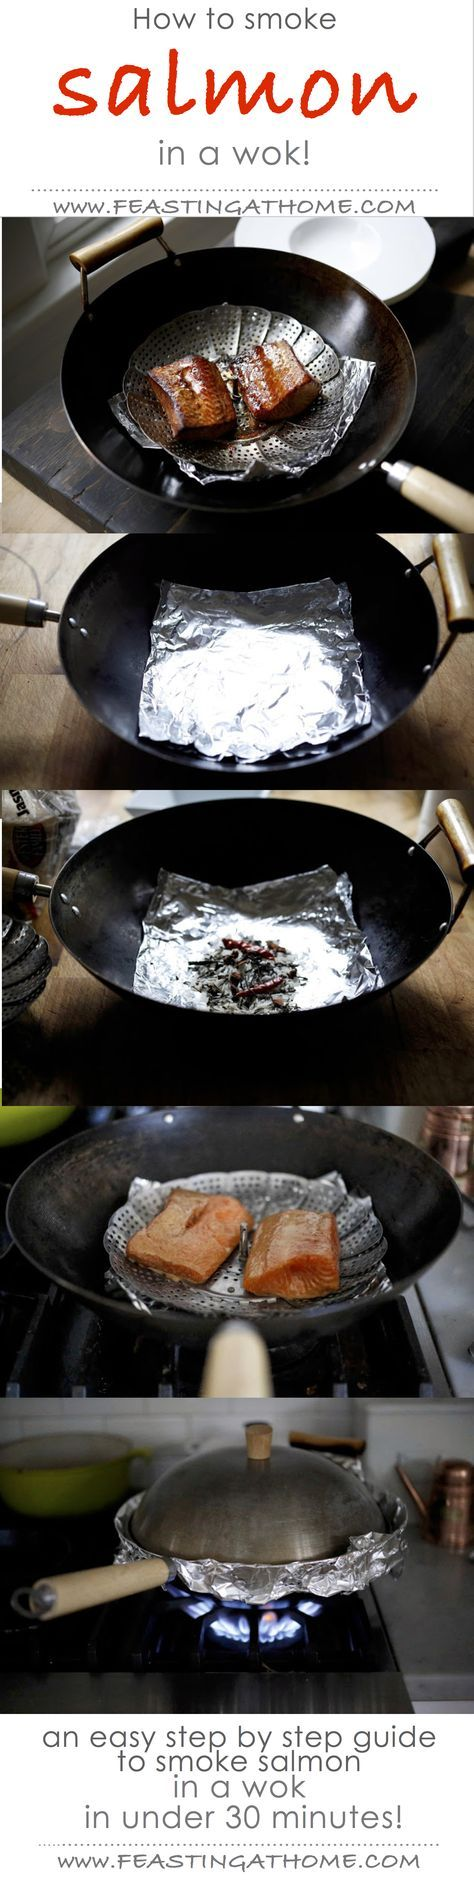 How to smoke salmon in a wok...in less than 30 minutes!